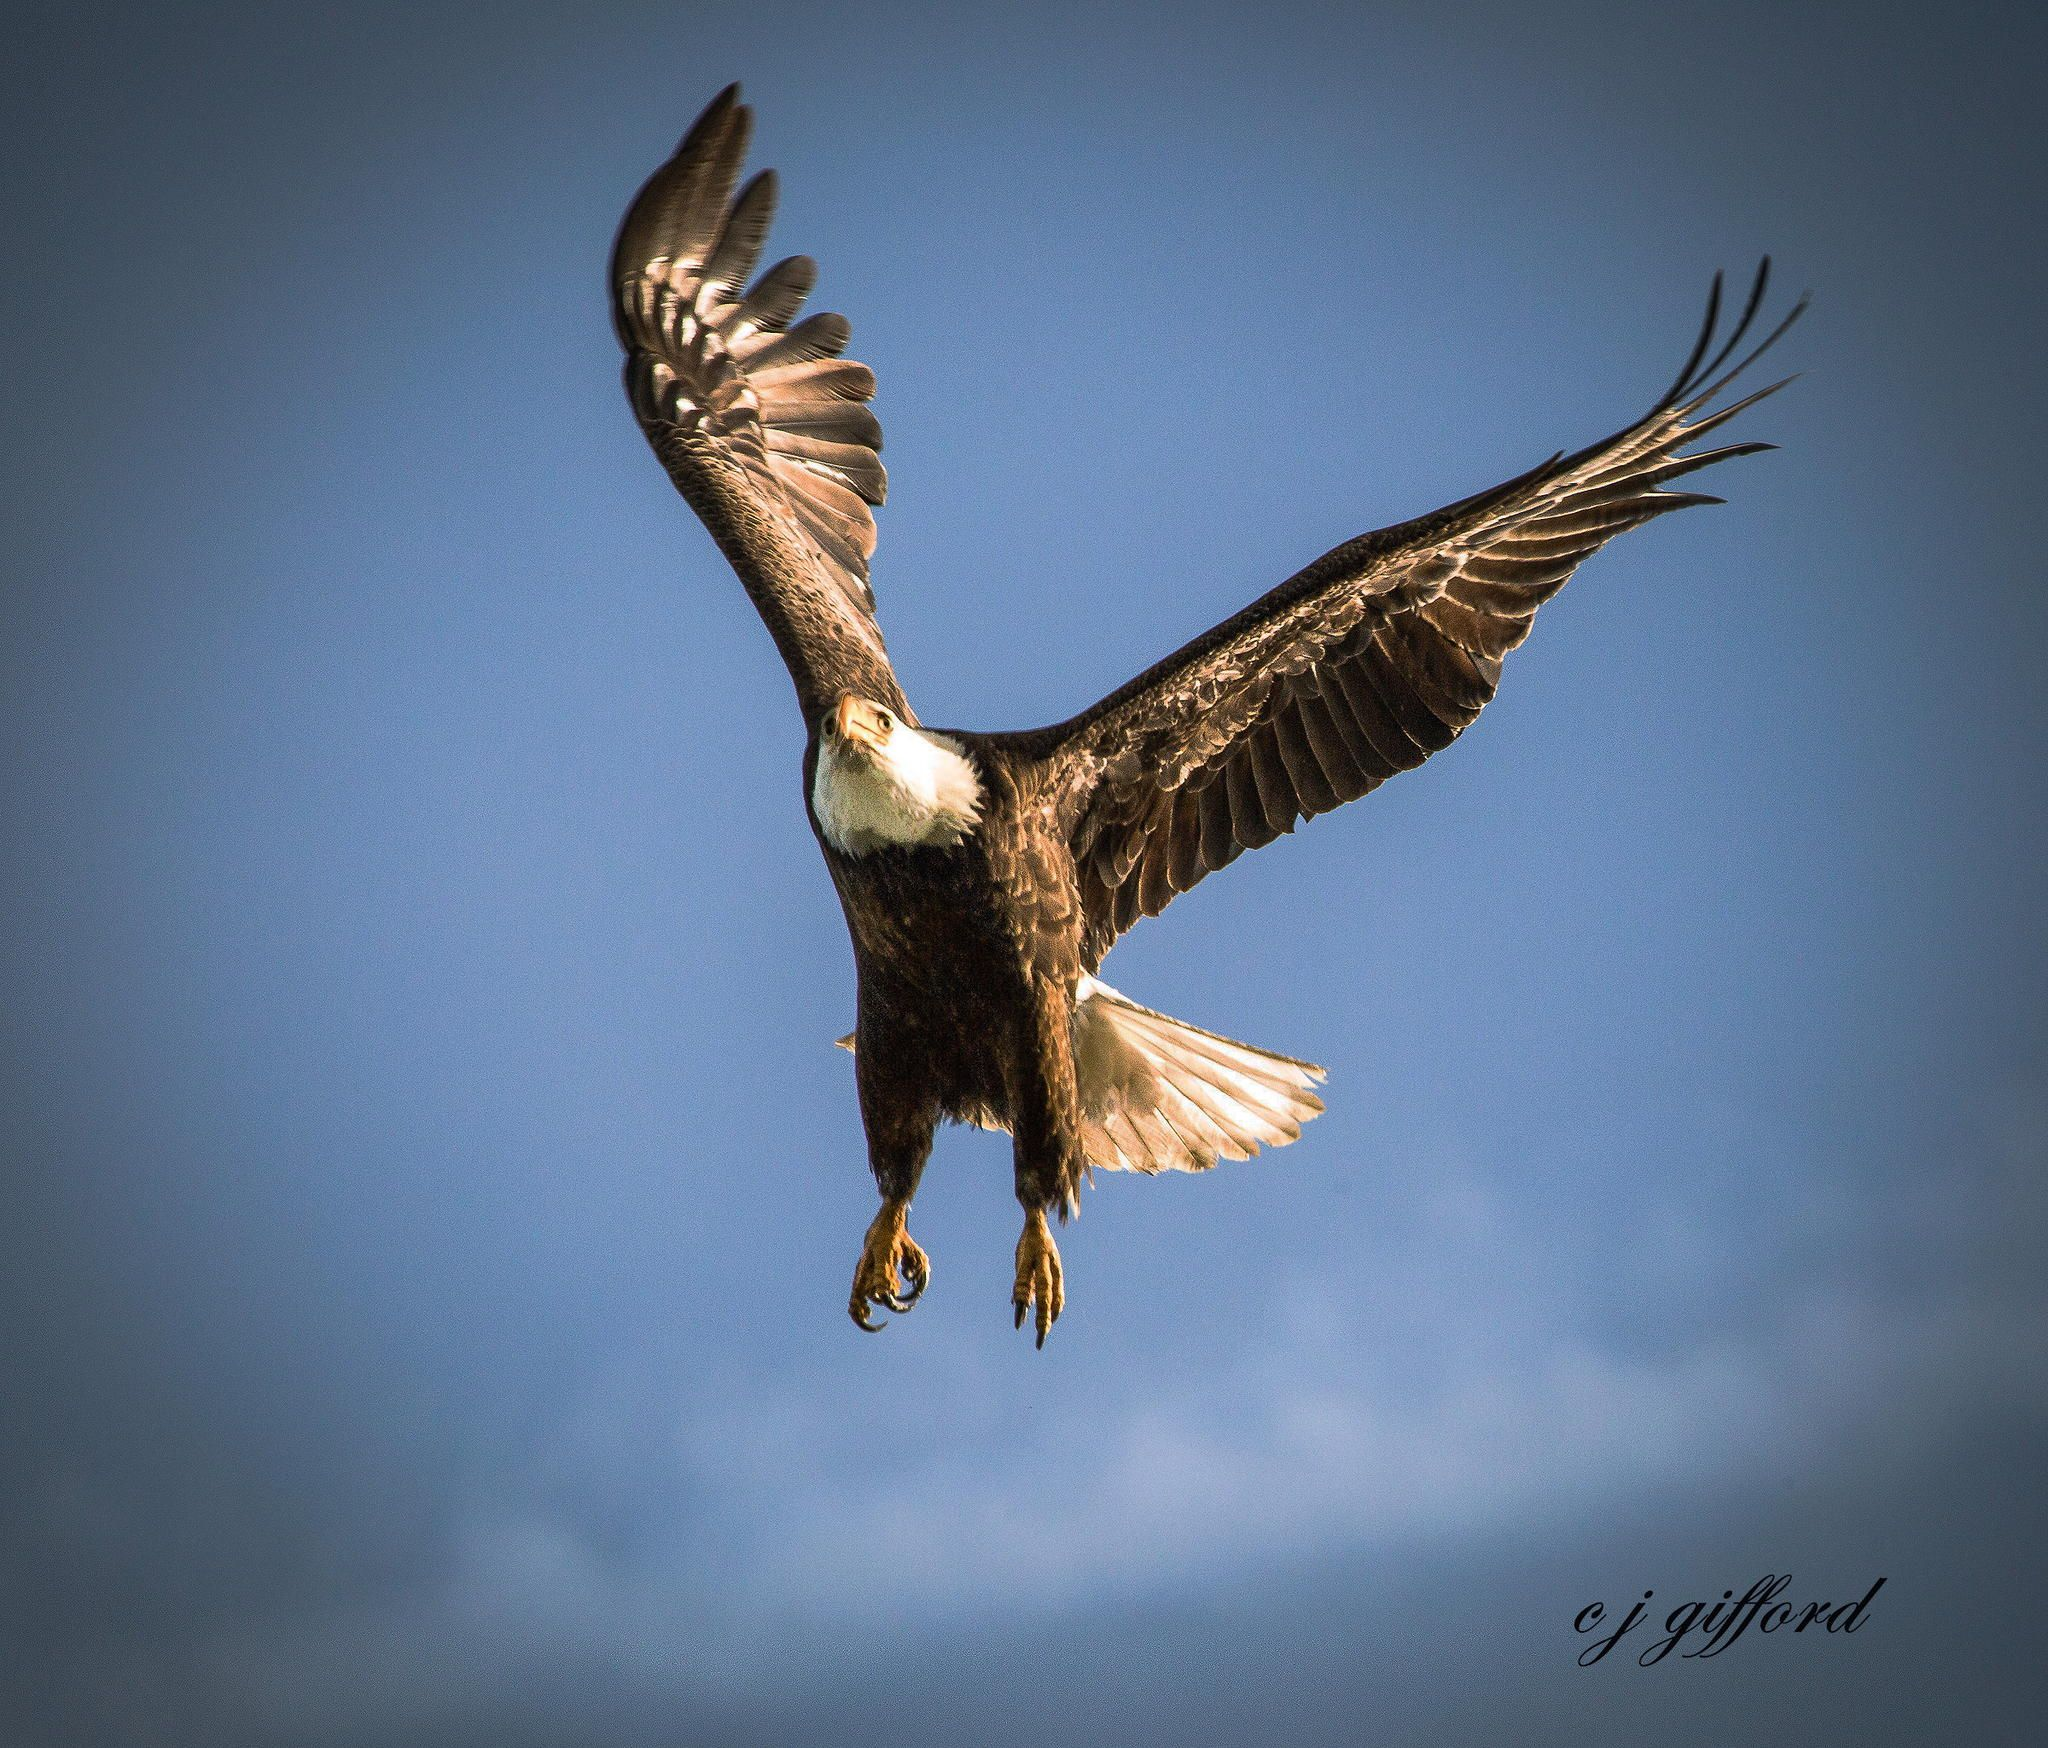 Landing Gear in Place by Connie  Gifford on 500px